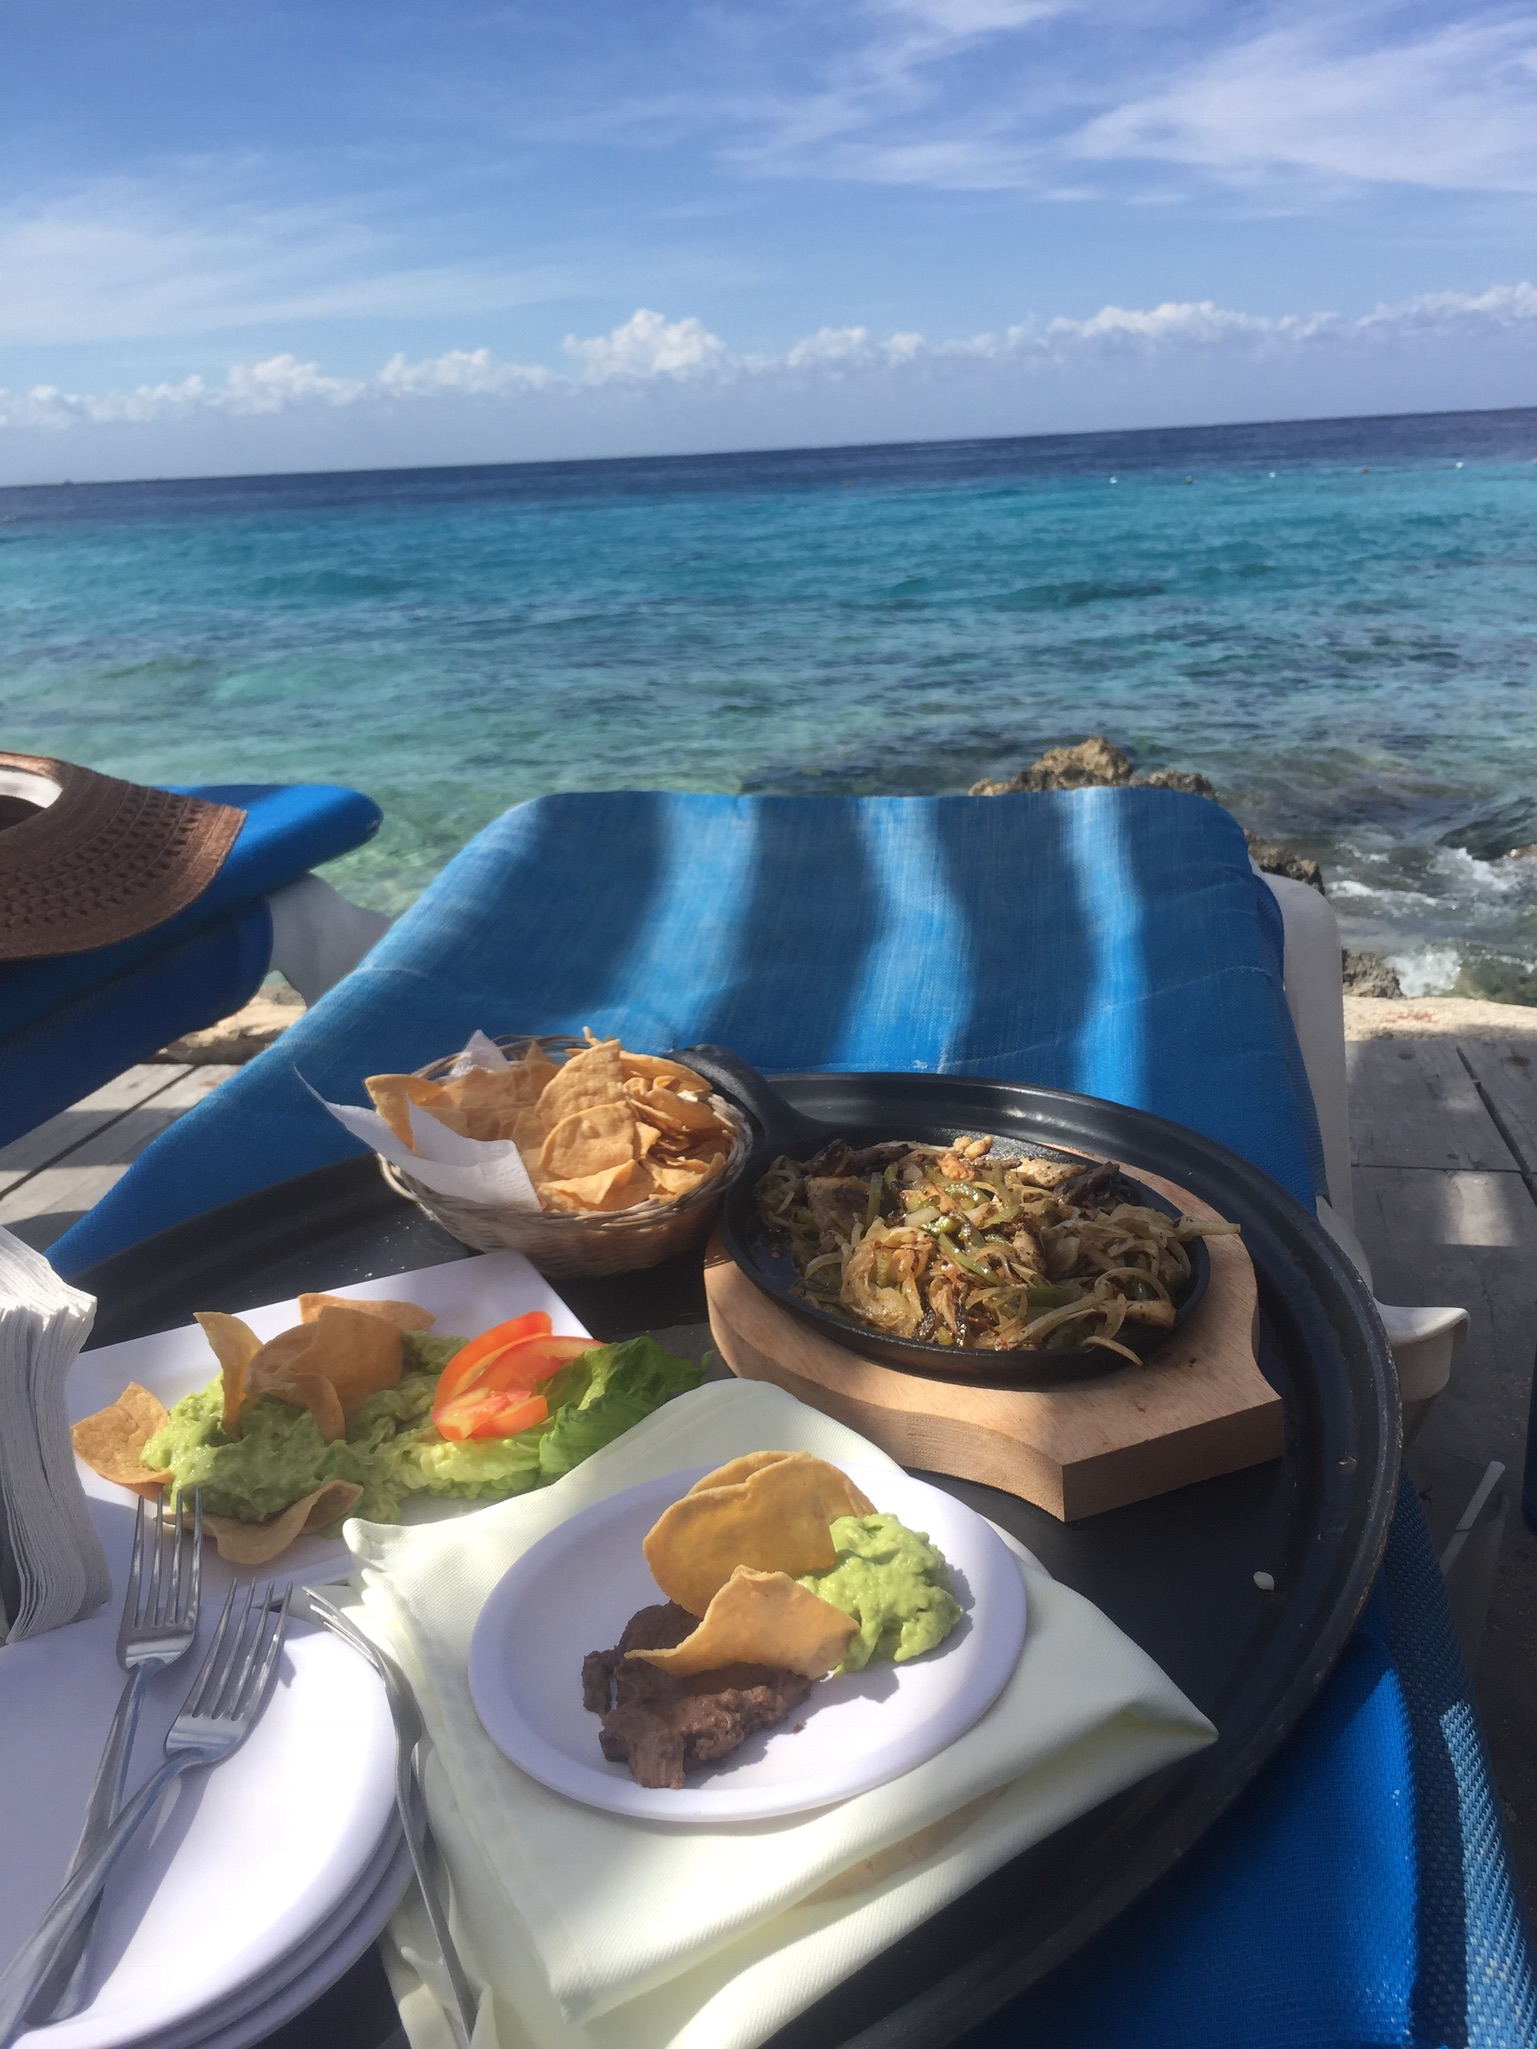 Look at that food with that blue water! Yum!